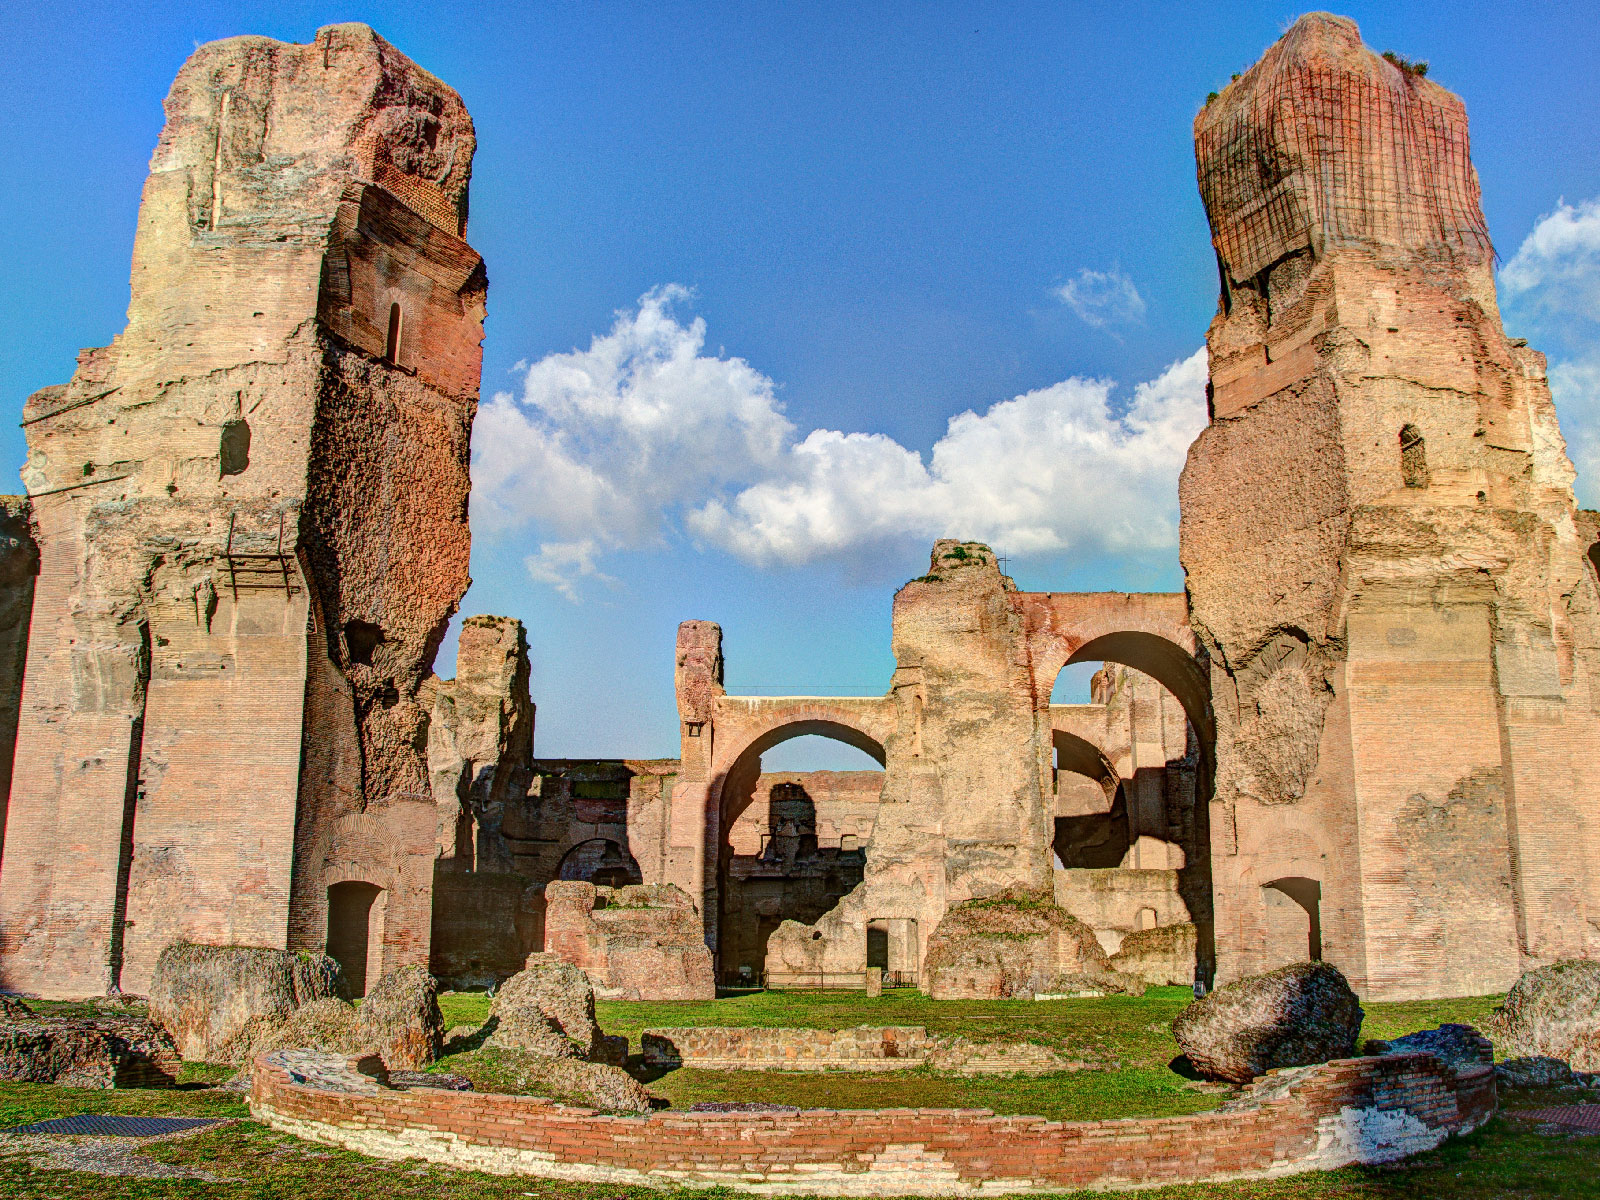 roma-baths-caracalla-mcdonalds-FT-BLOG0819.jpg